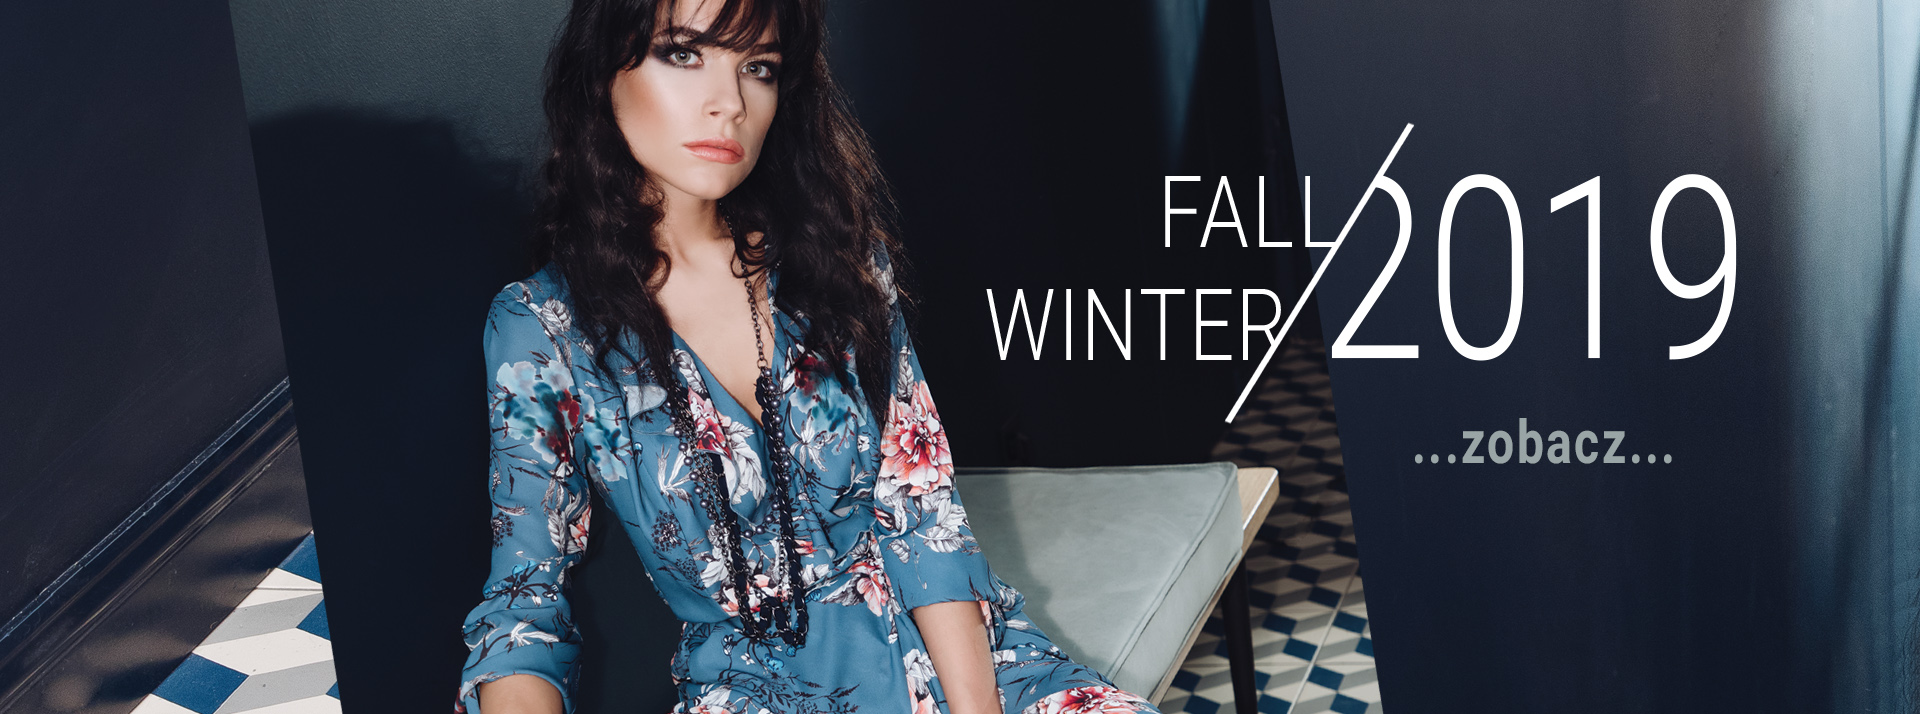 Fall_Winter 19_20